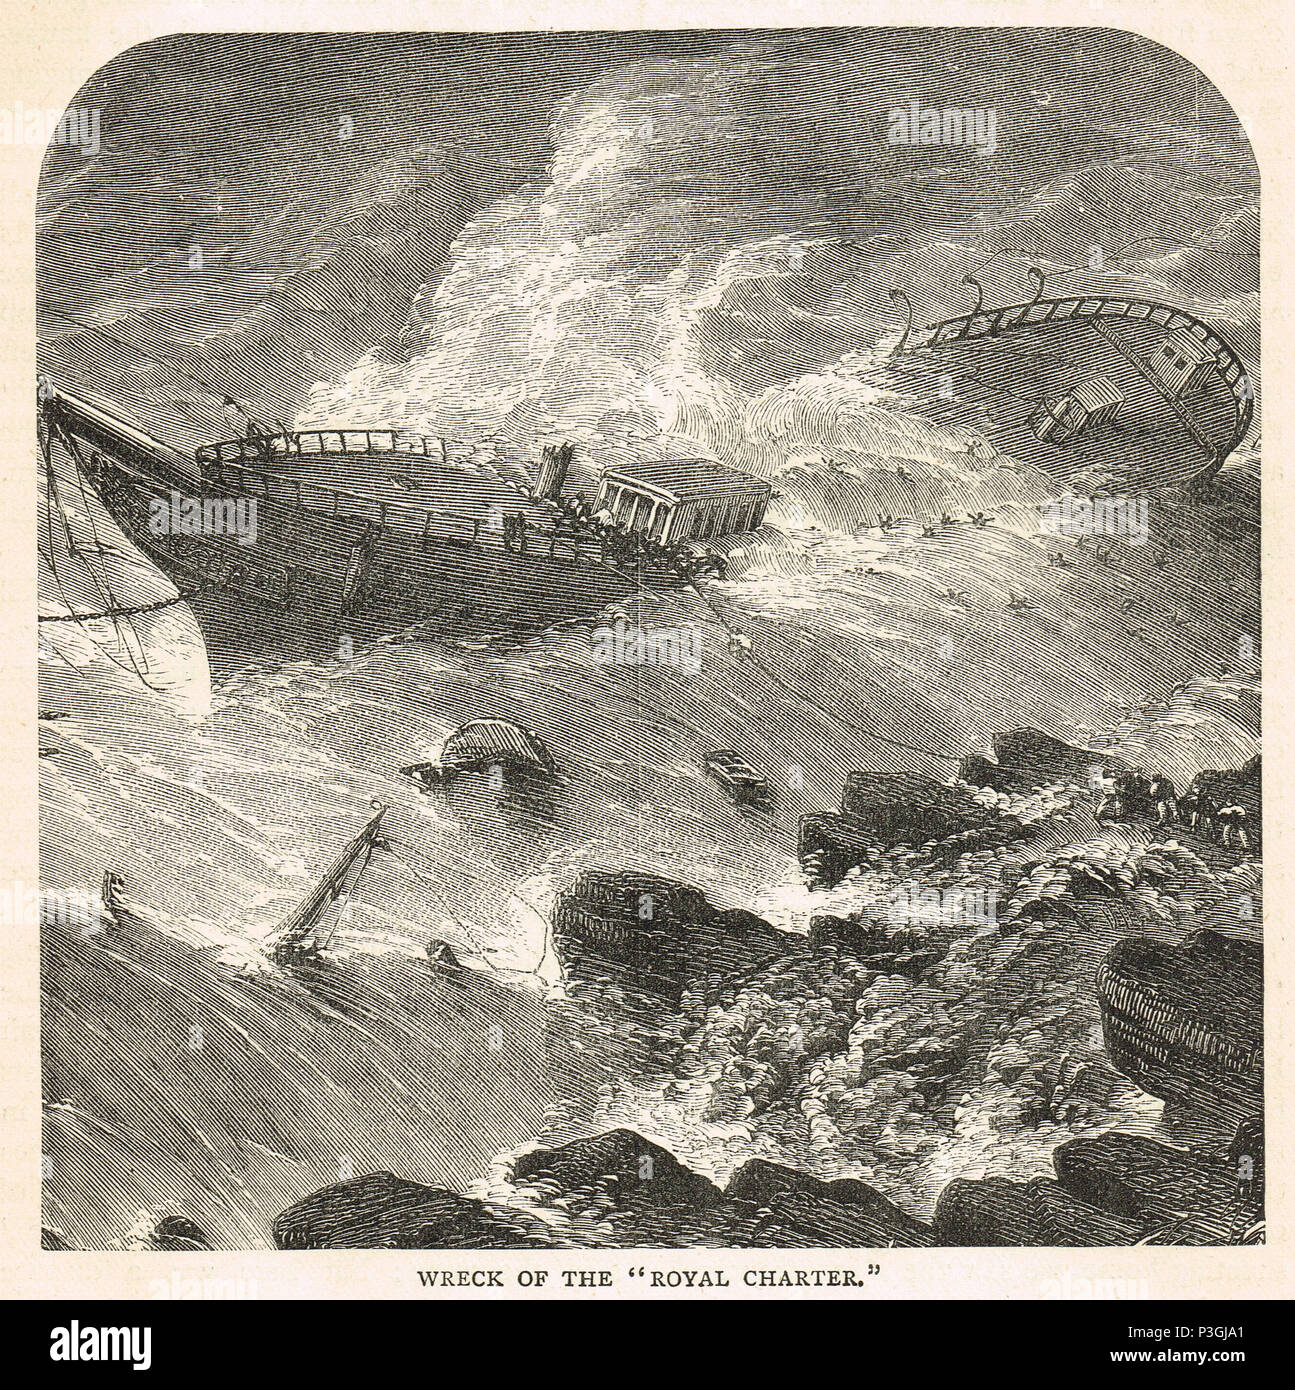 Royal Charter steam clipper, wrecked off the beach of Porth Alerth, in Dulas Bay, on the north-east coast of Anglesey, on 26 October 1859 - Stock Image